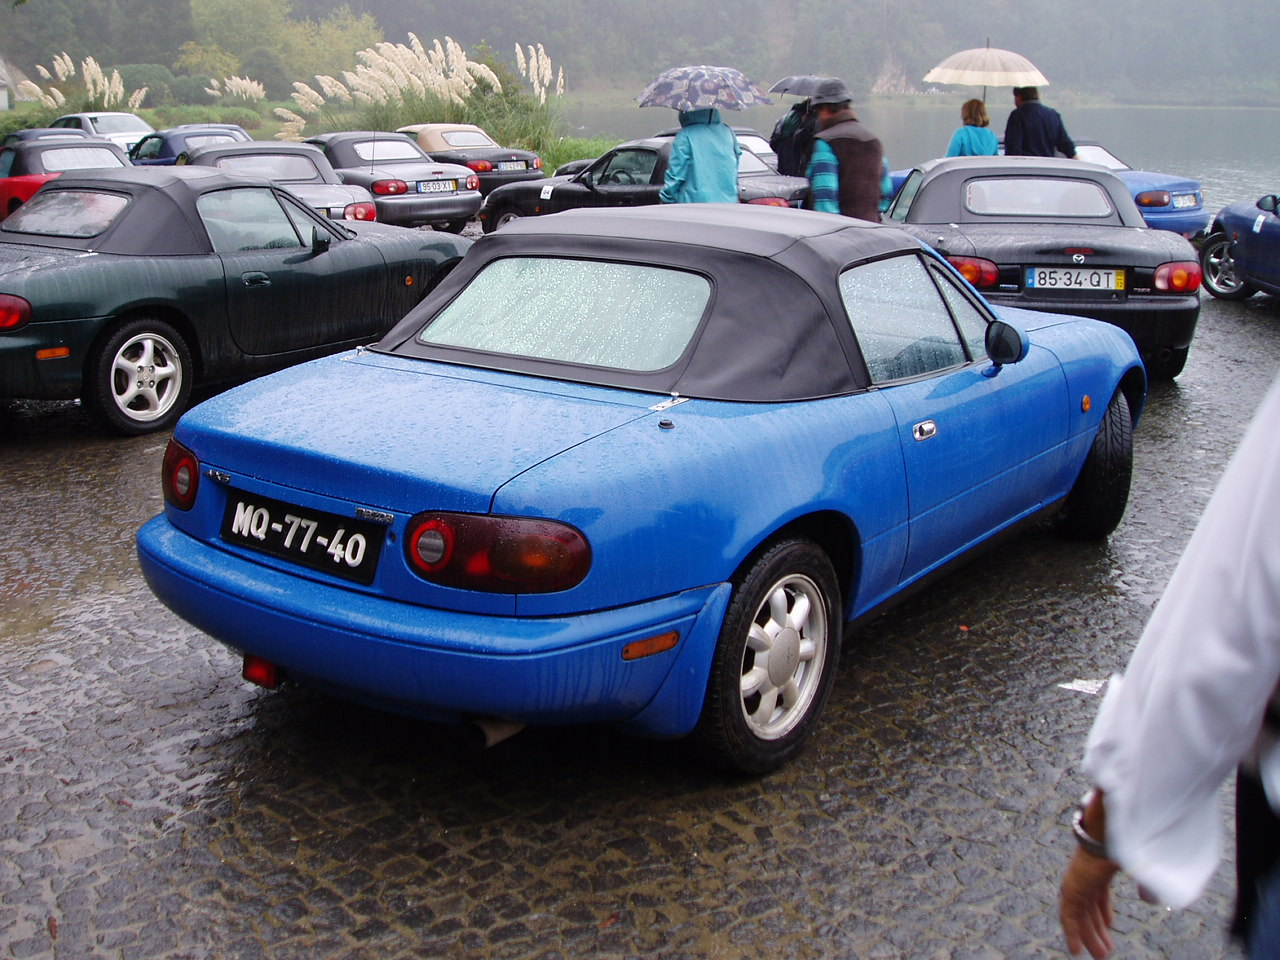 file:mazda mx-5 1990-1993 mariner blue - wikimedia commons